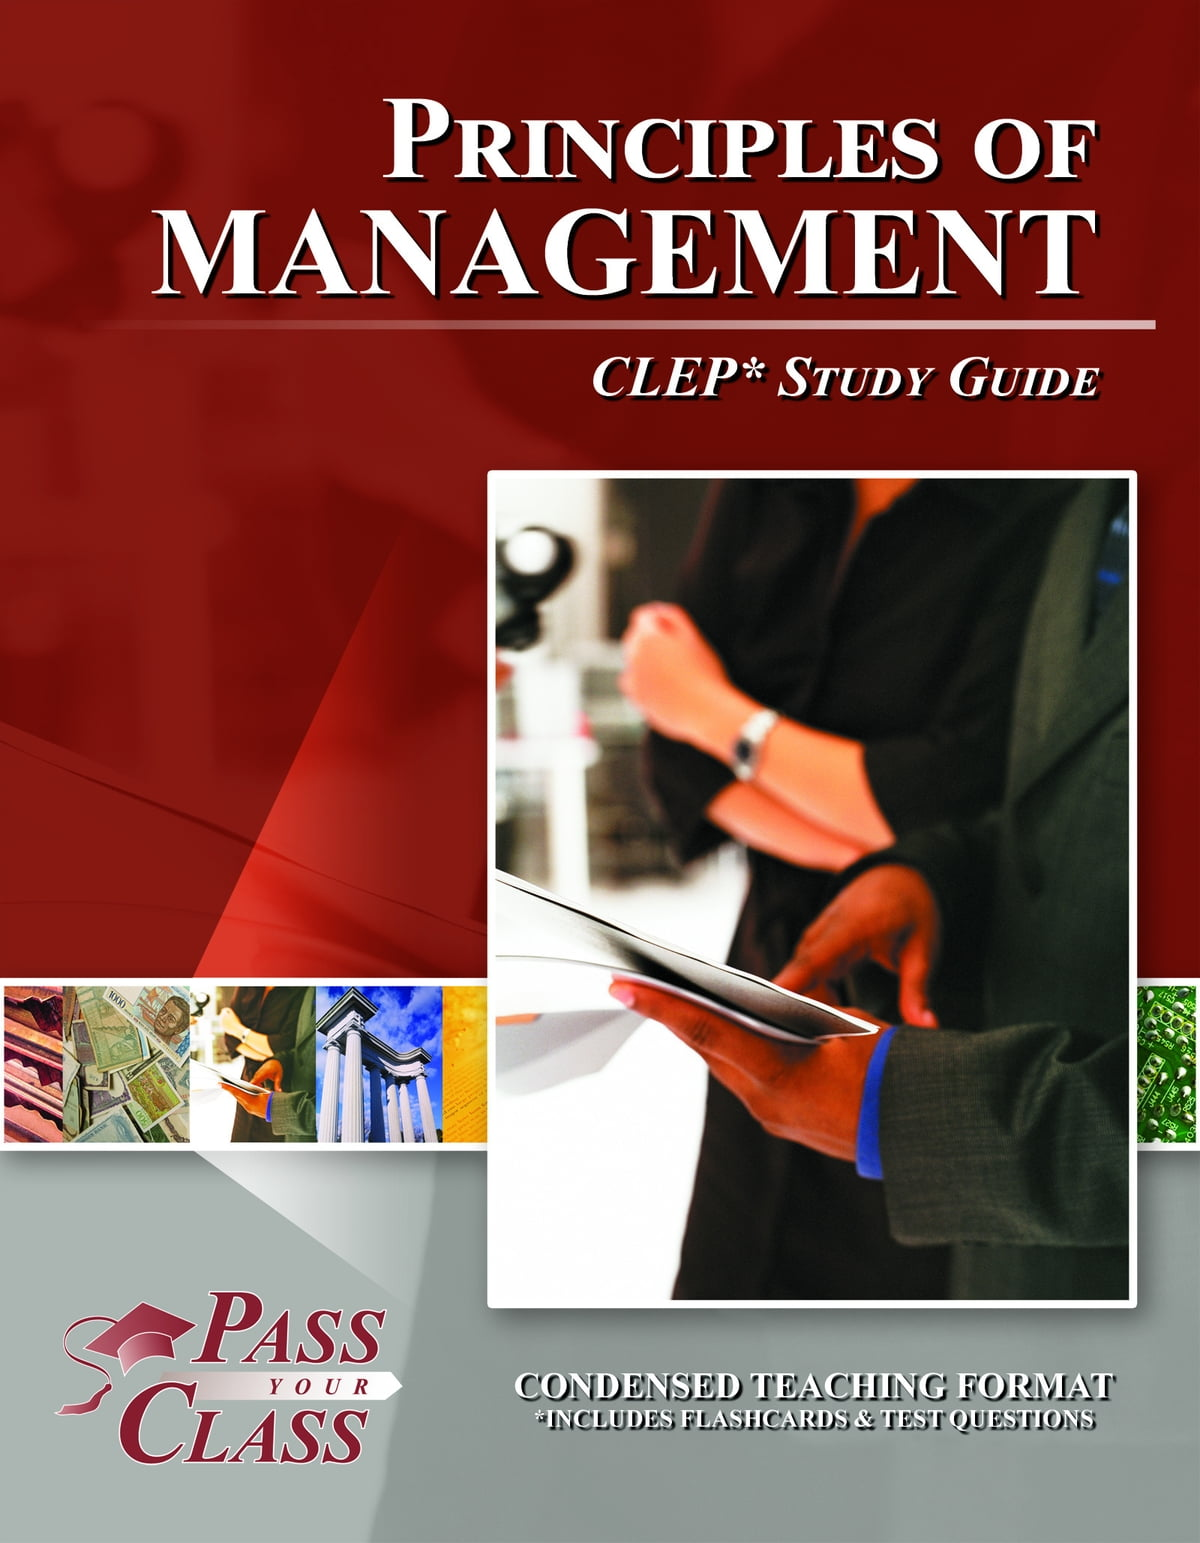 CLEP Principles of Management Test Study Guide ebook by Pass Your Class  Study Guides - Rakuten Kobo